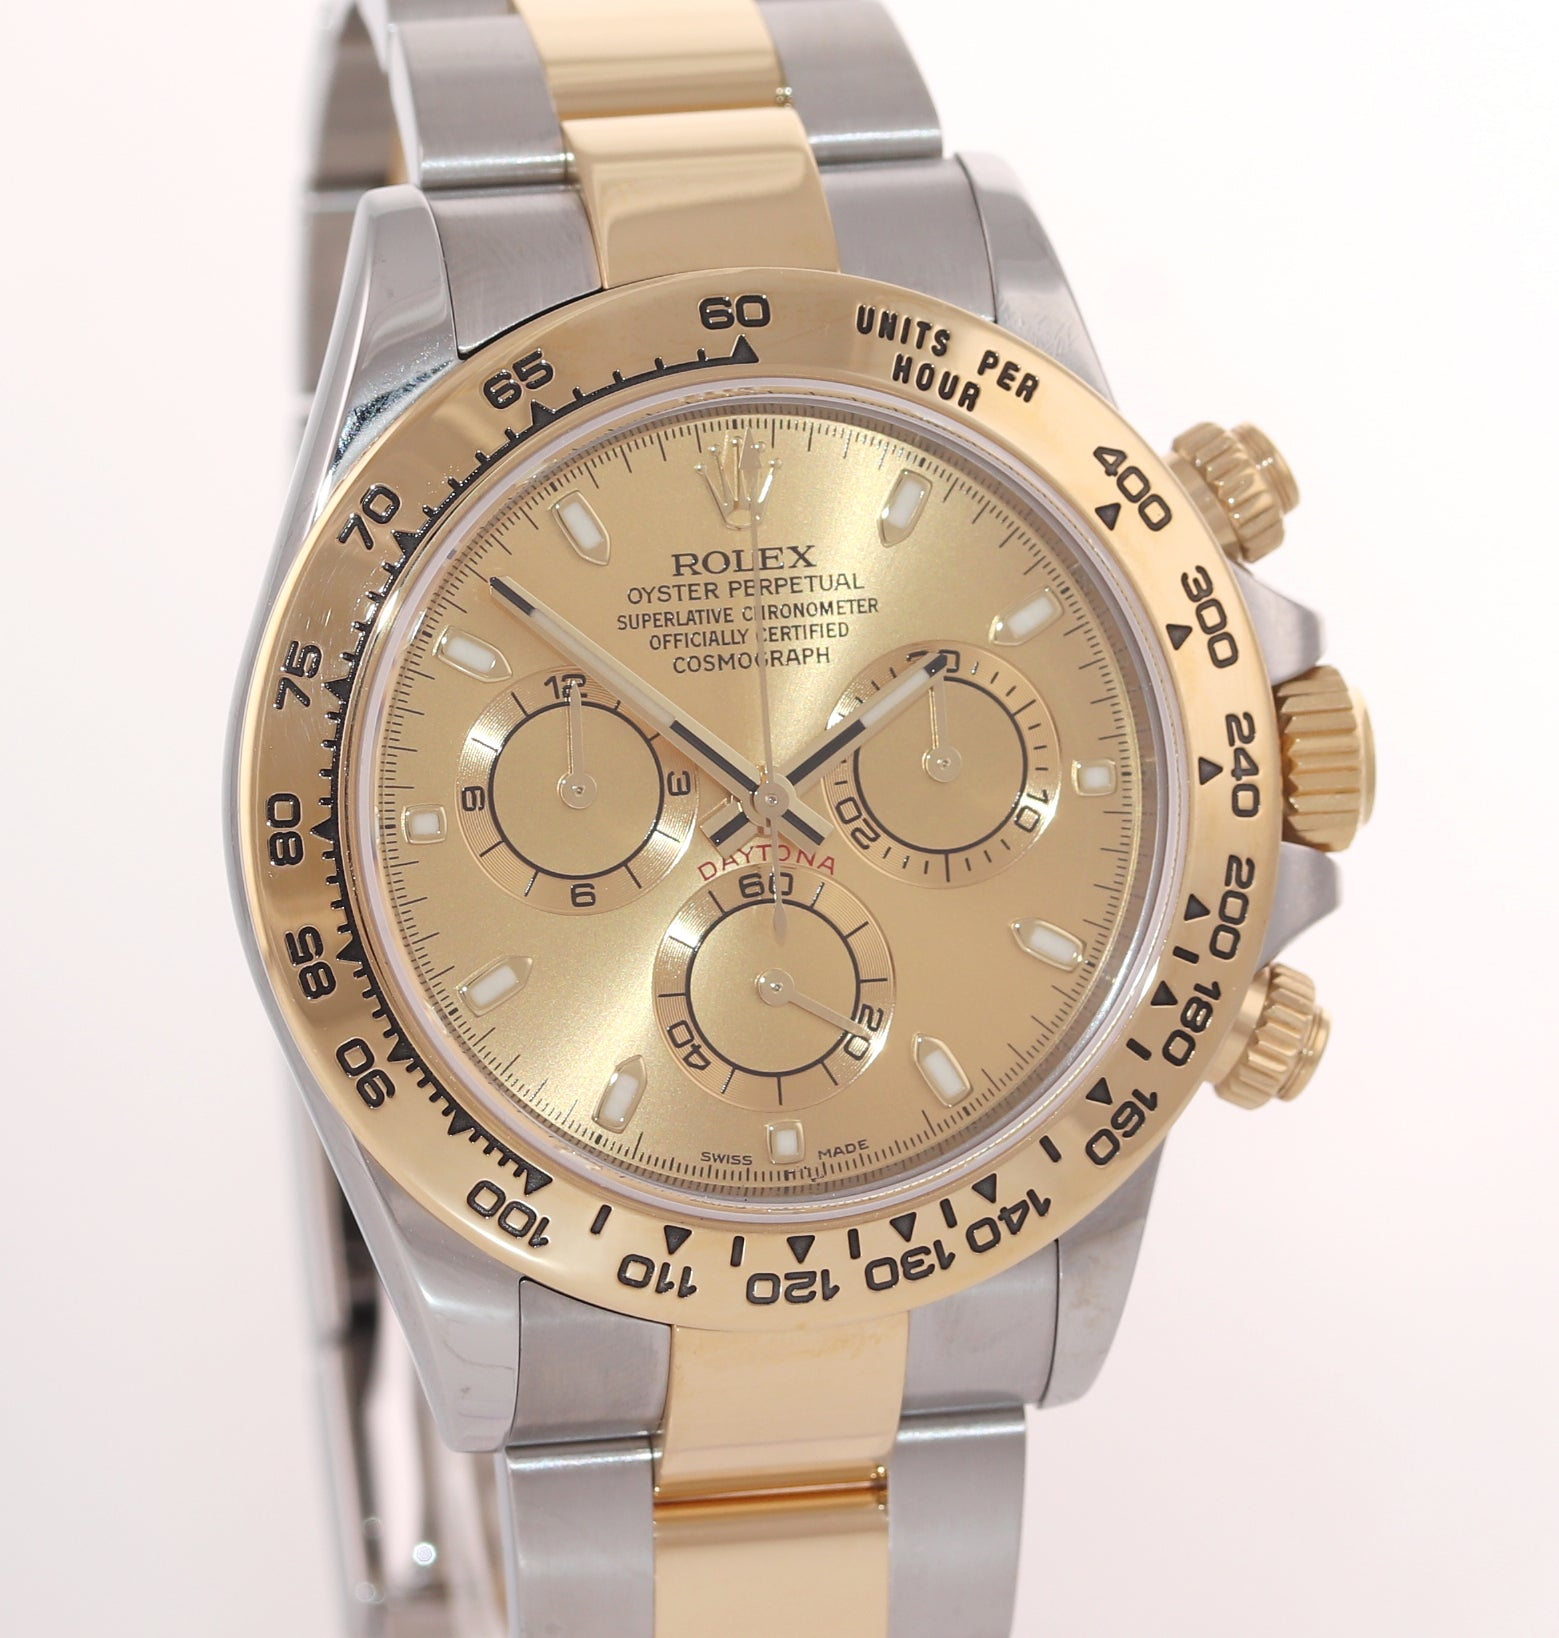 MINT PAPERS 2018 Rolex Daytona 116503 Champagne Two Tone Steel Gold Watch Box